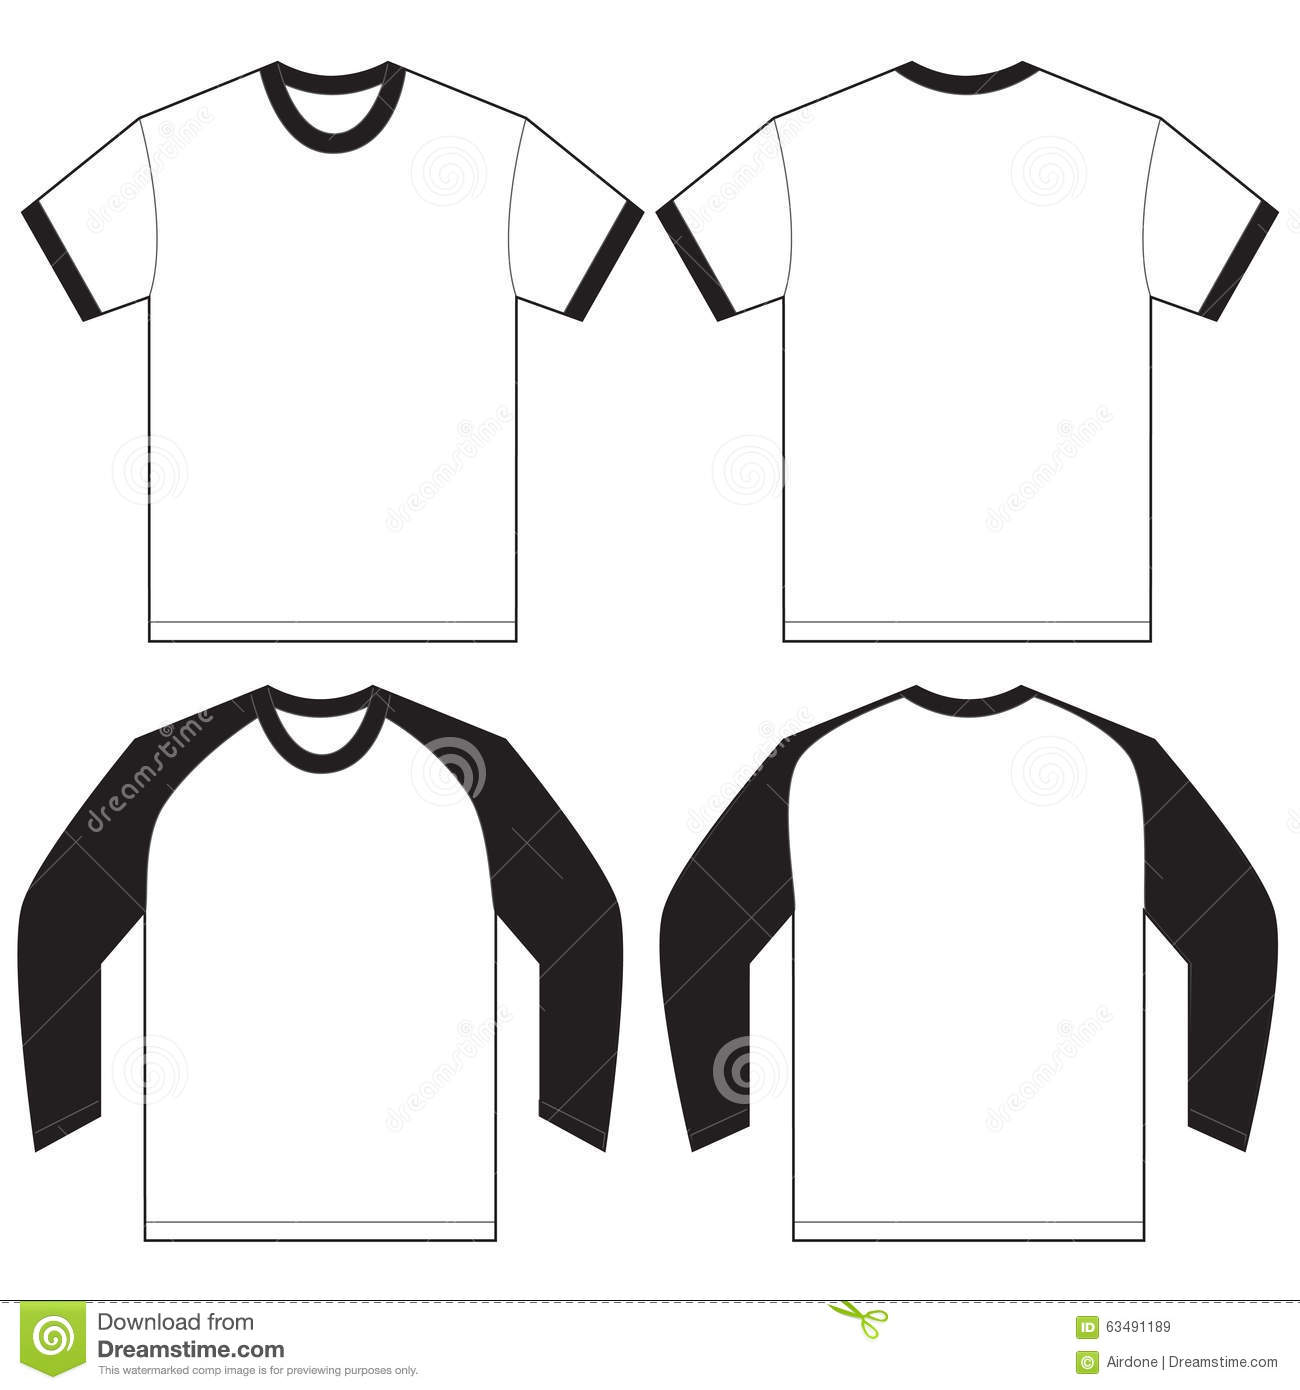 Black white ringer t shirt design template stock vector for Blank t shirt design template